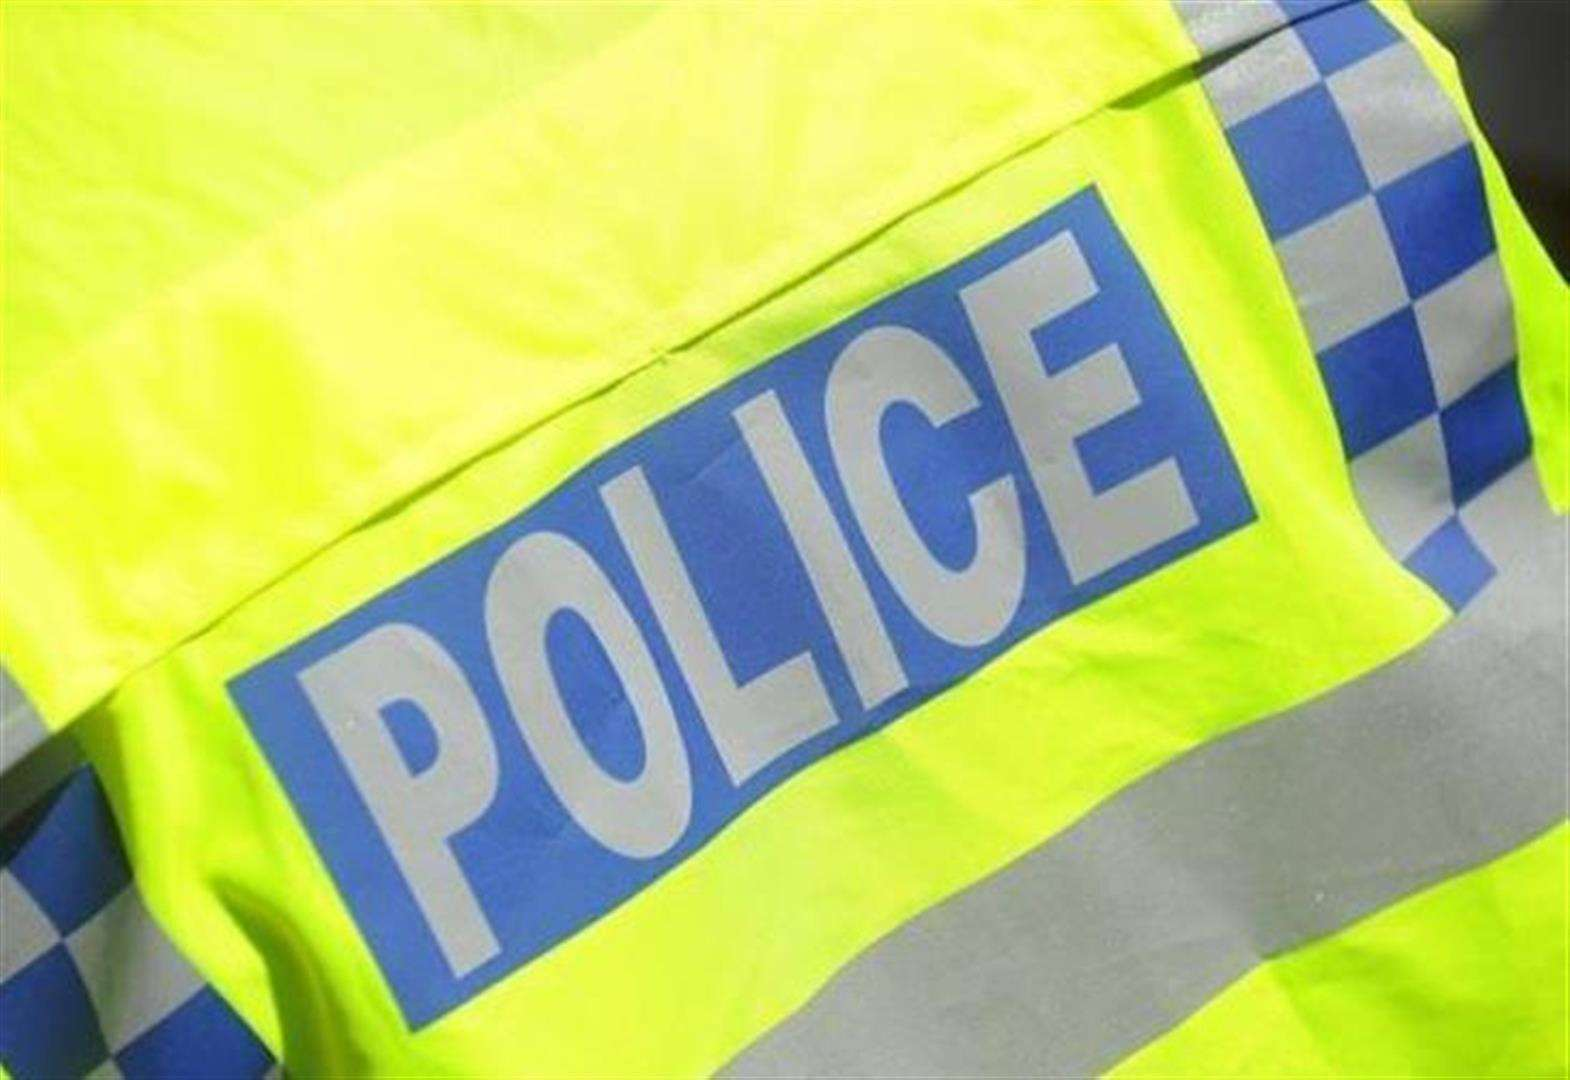 Three men from Rutland charged with taking a vehicle without owner's consent in Corby